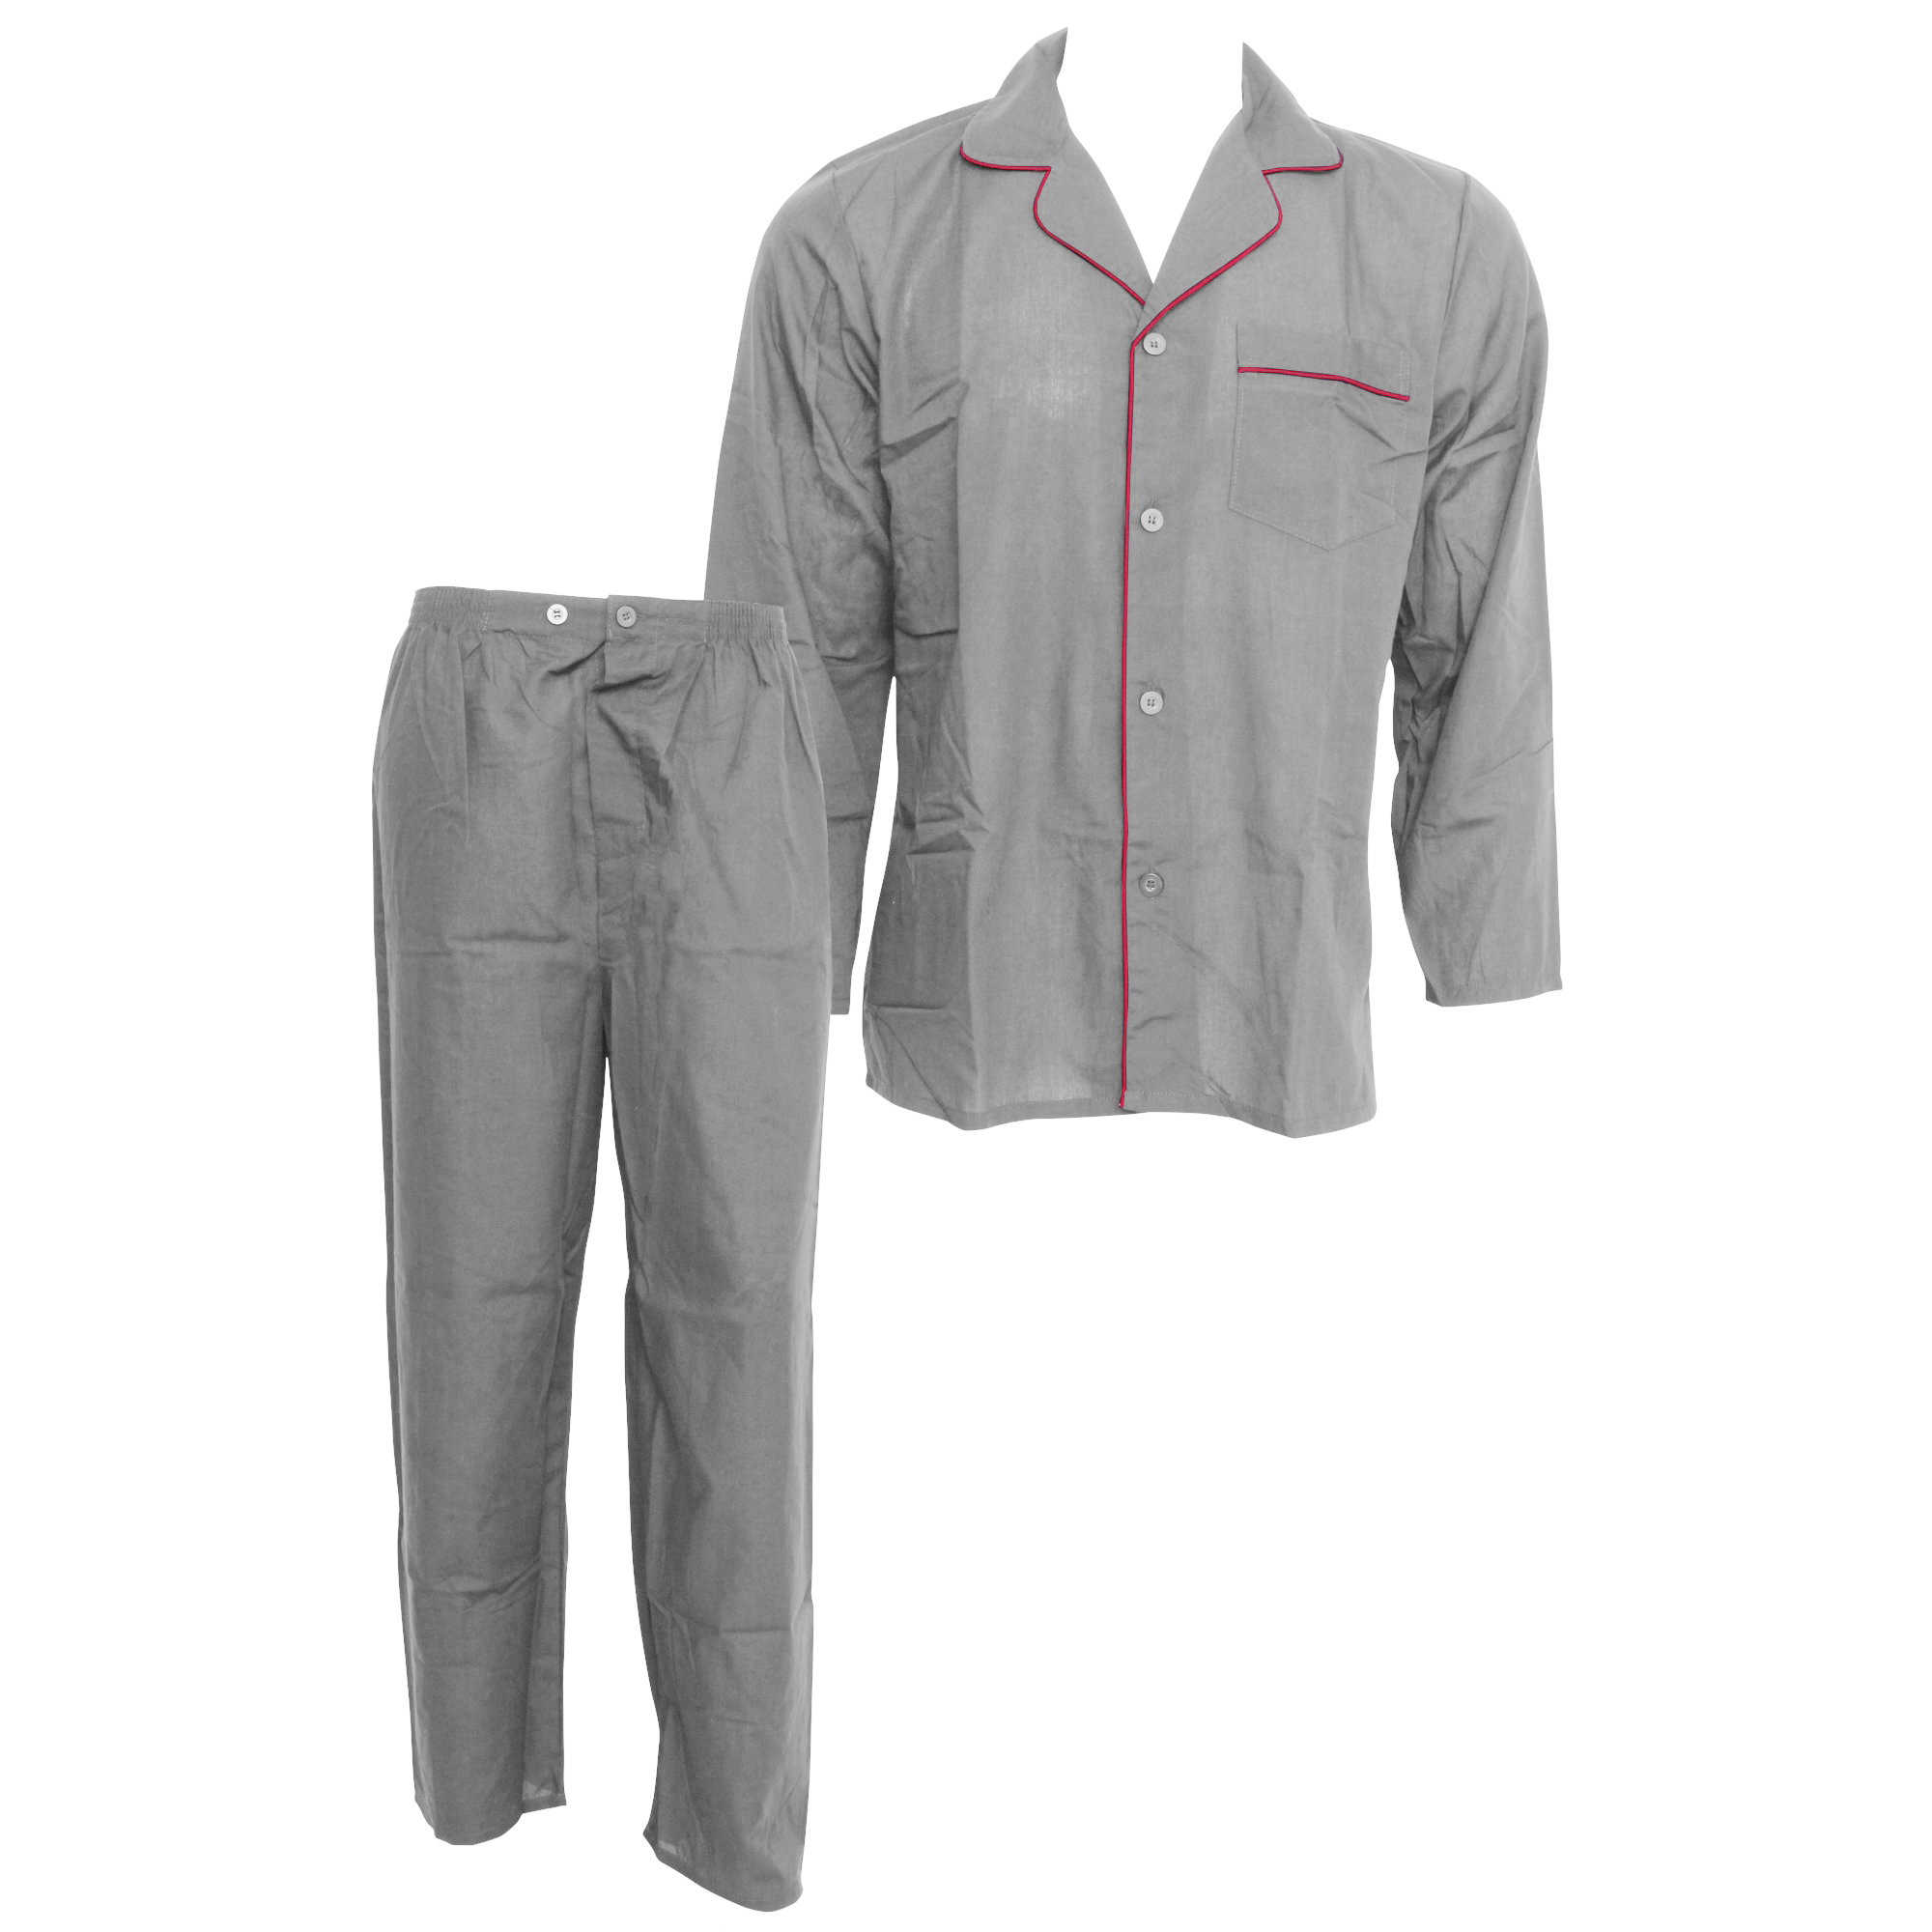 Button Up Pajamas It's amazing what becomes